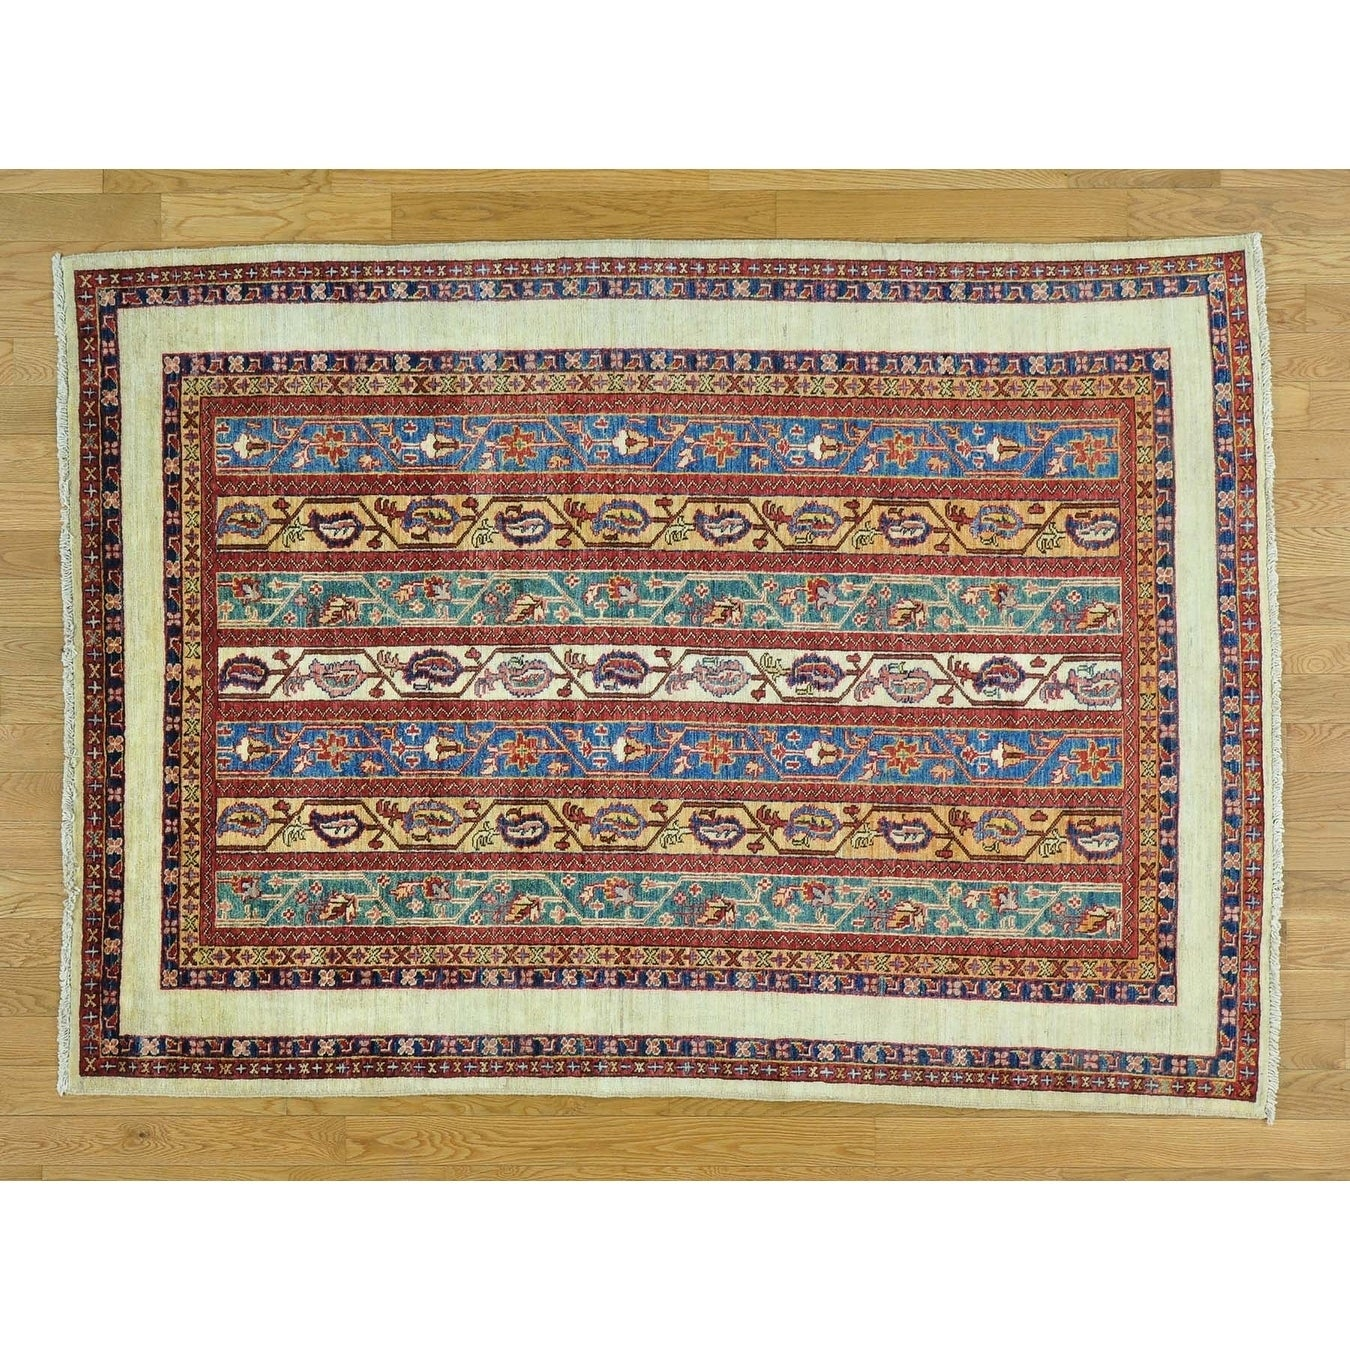 Hand Knotted Multicolored Kazak with Wool Oriental Rug - 49 x 68